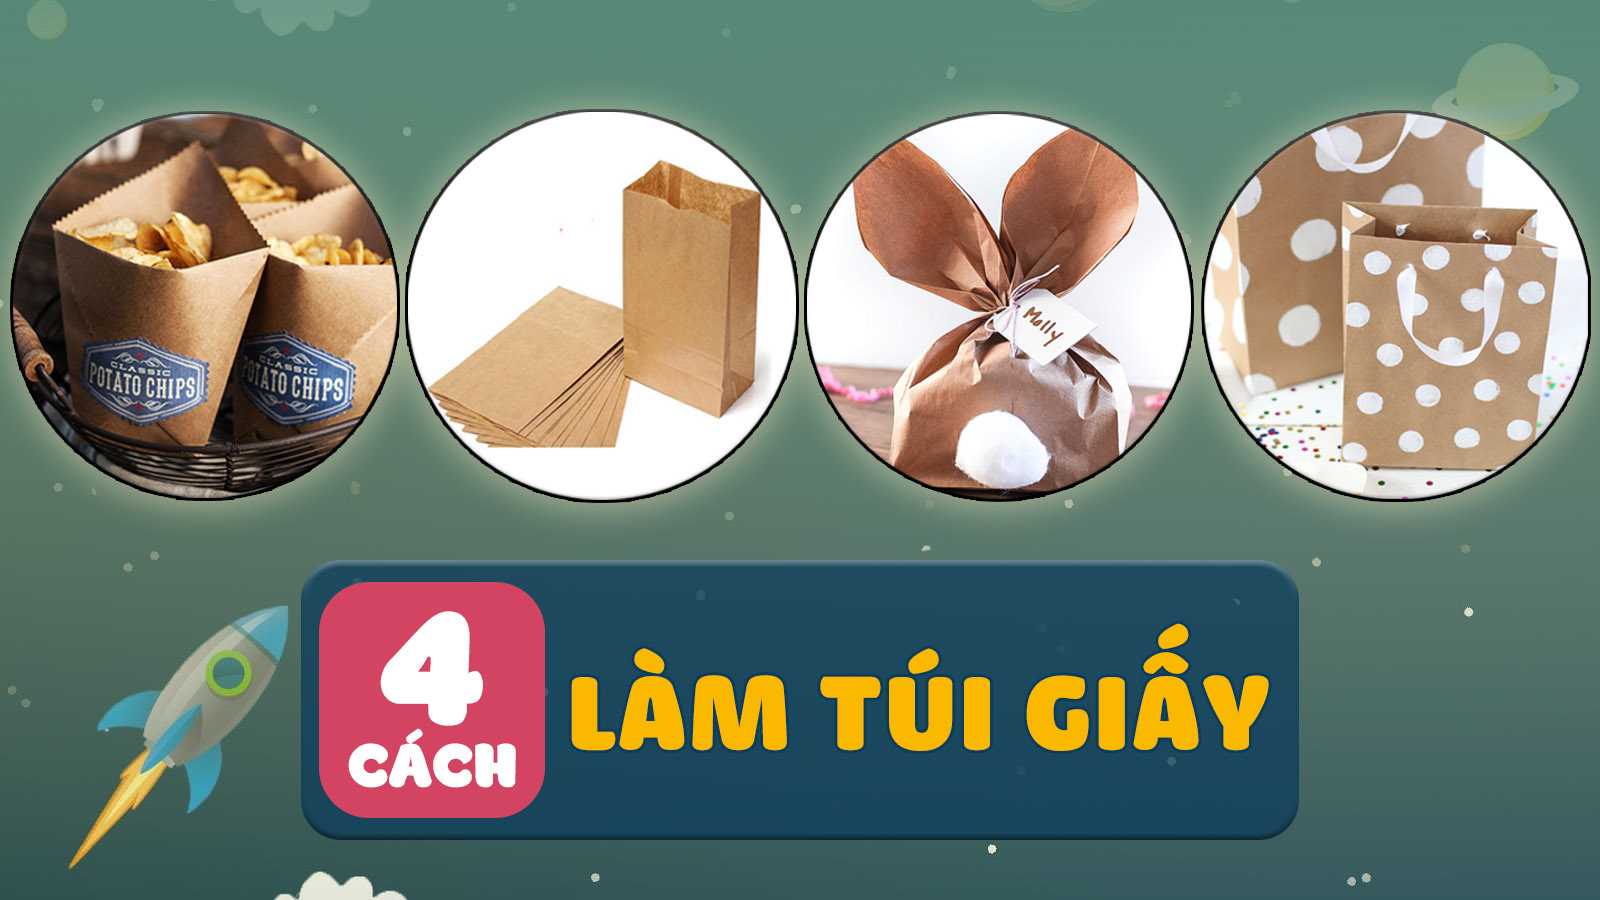 cach-lam-tui-giay-don-gian-voh